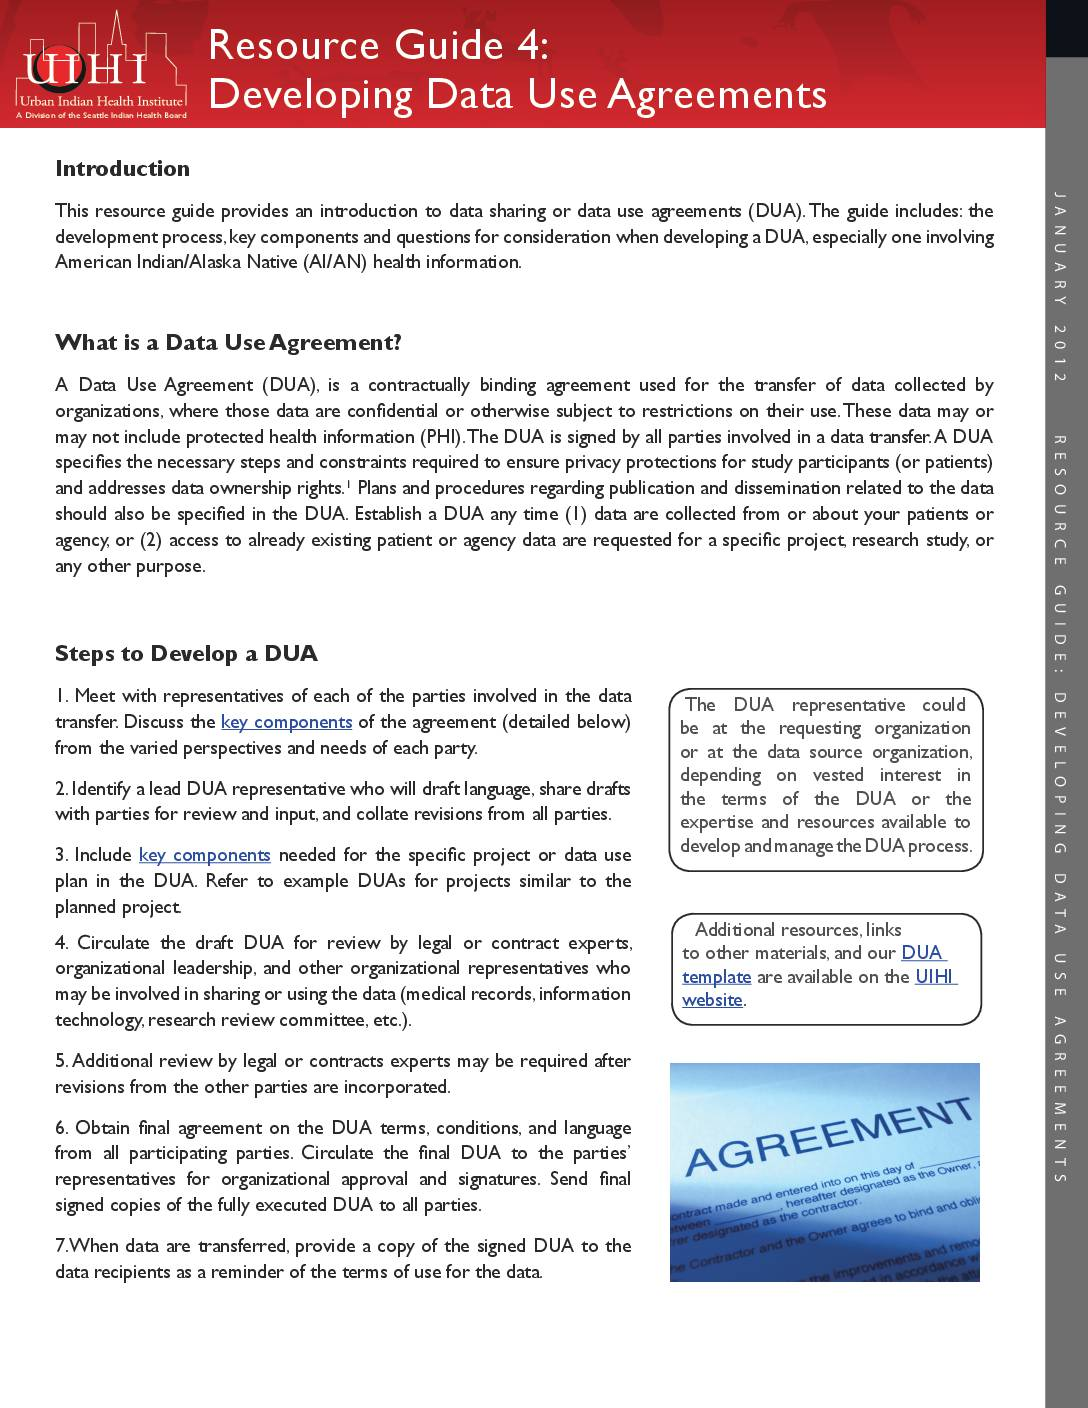 Resource Guide 4 Developing Data Use Agreements The Urban Indian